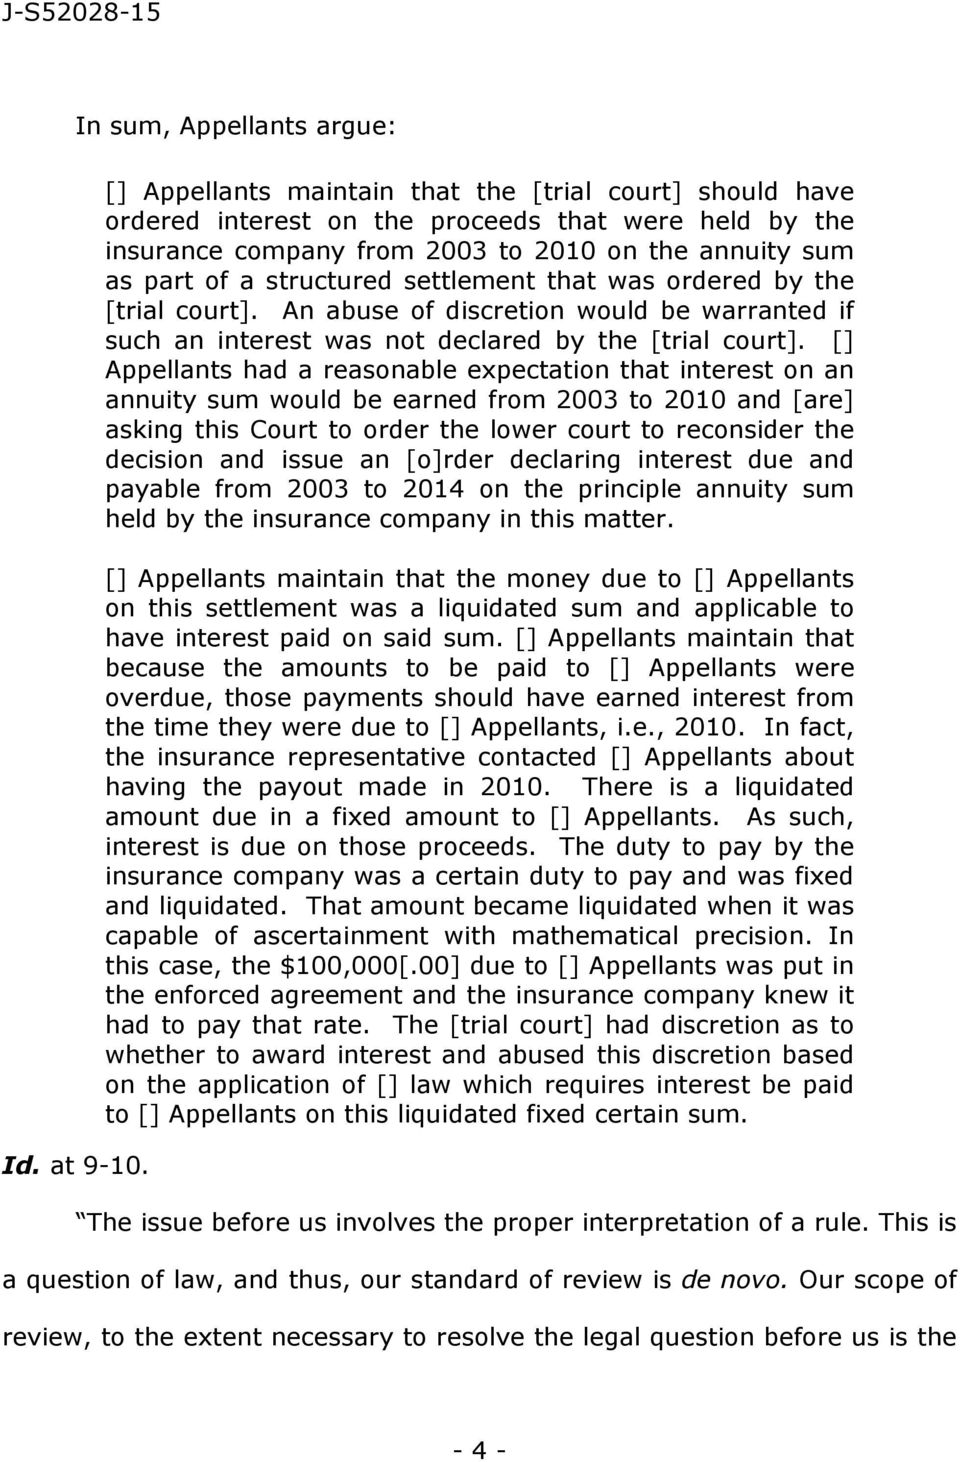 settlement that was ordered by the [trial court]. An abuse of discretion would be warranted if such an interest was not declared by the [trial court].